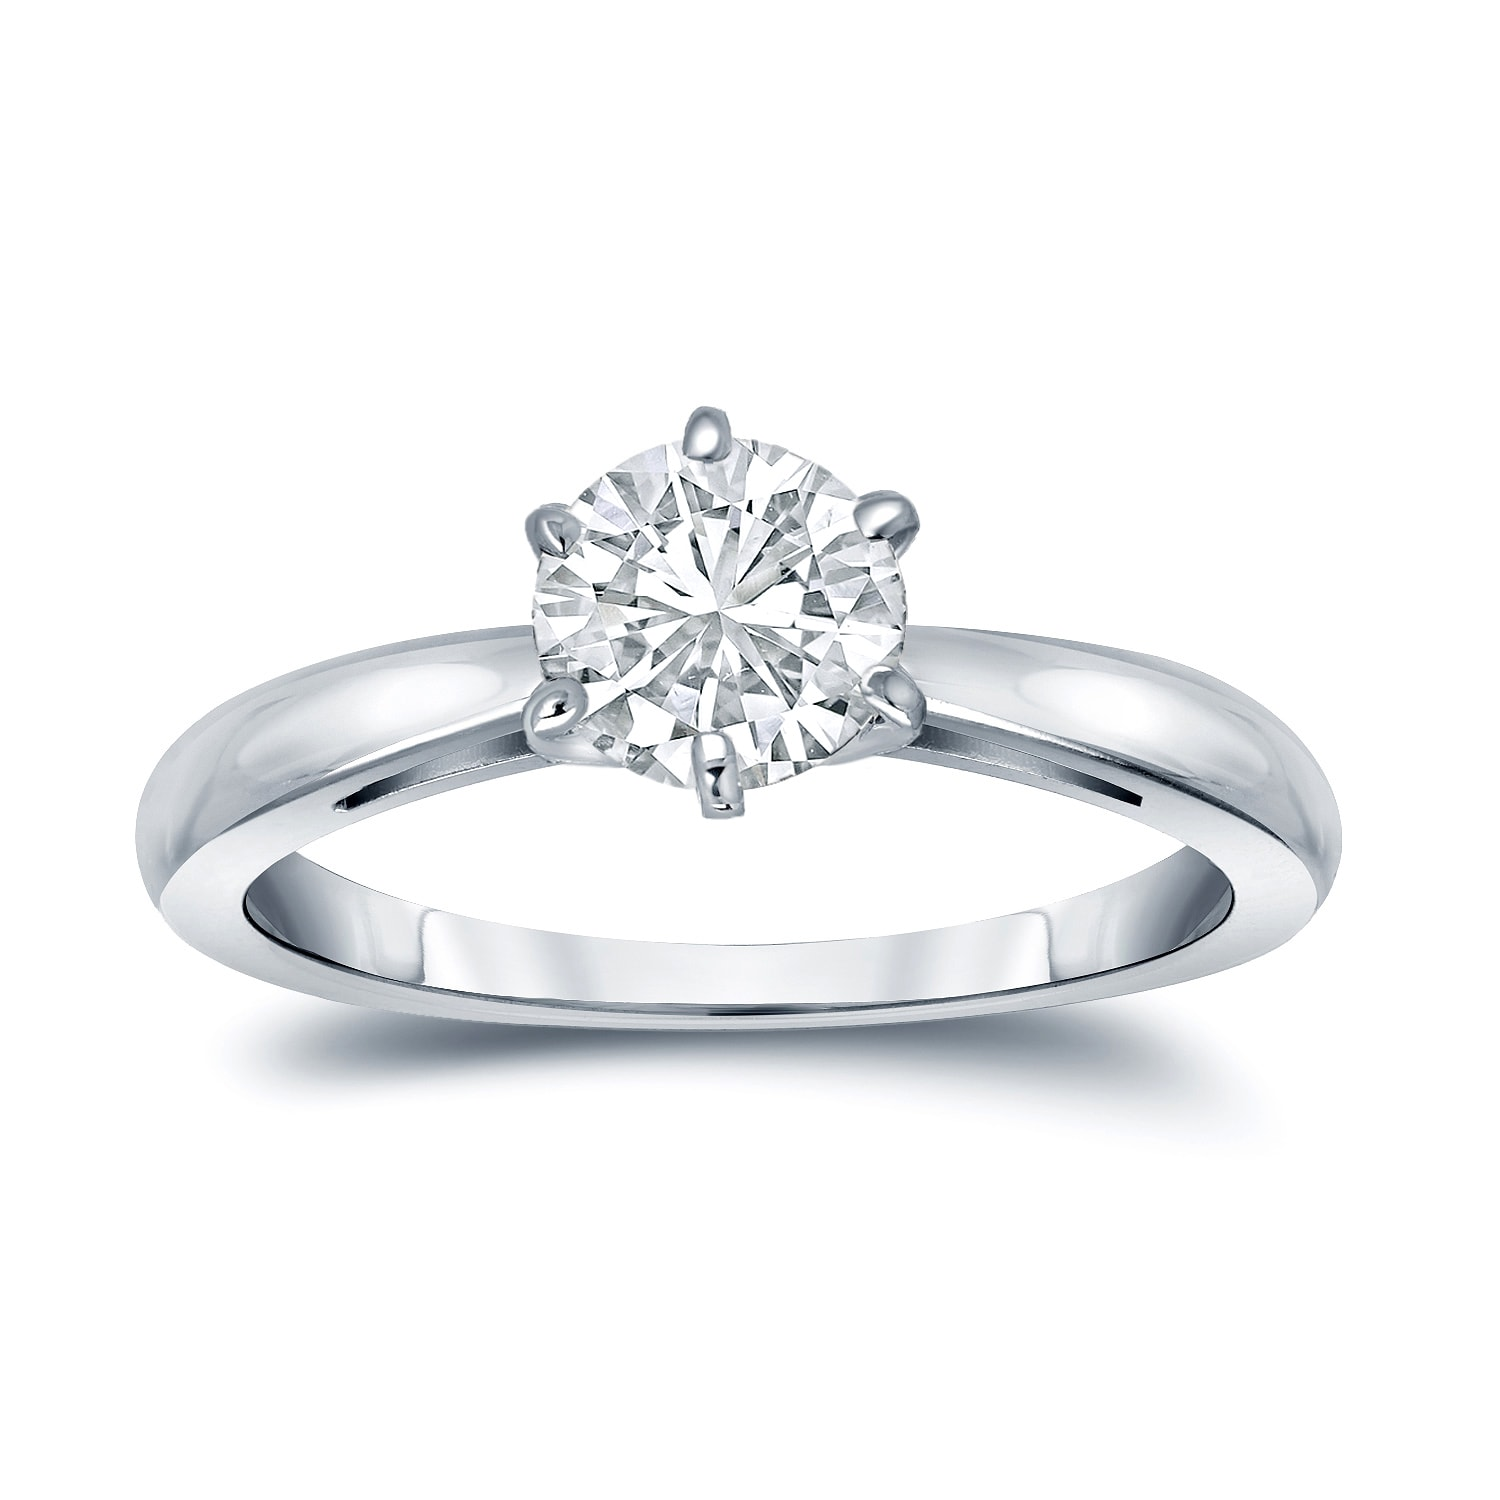 Auriya  Platinum GIA Certified 1.25ct TDW 6-Prong Round Solitaire Diamond Engagement Ring